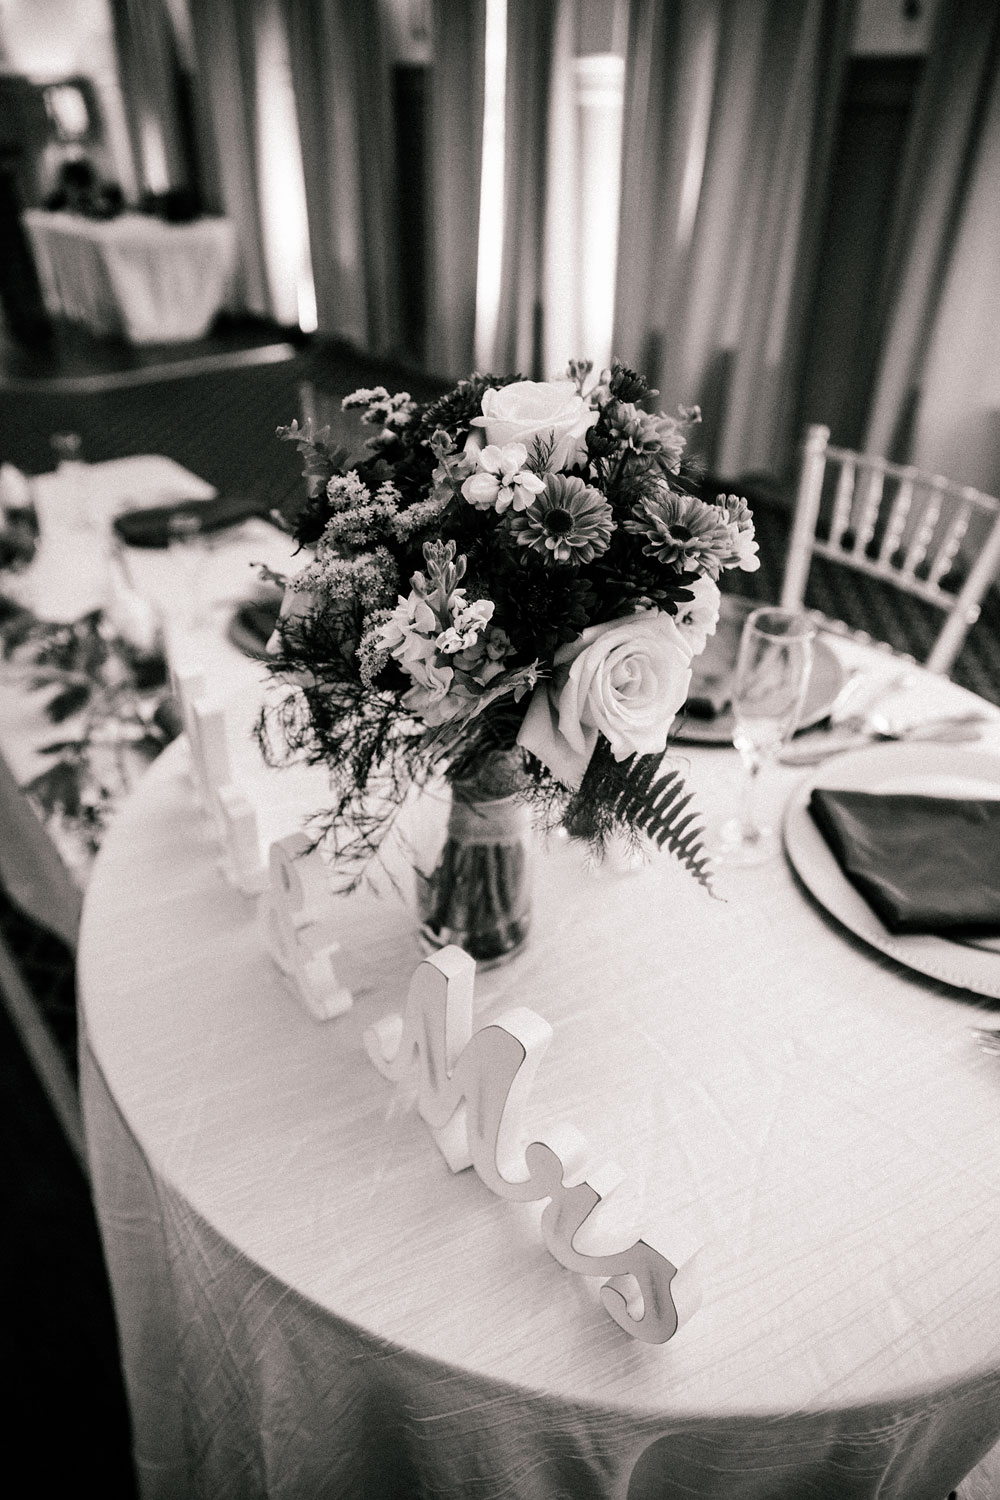 cleveland-wedding-photographer-black-and-white-photography-fine-art-photography-central-ohio-5.jpg